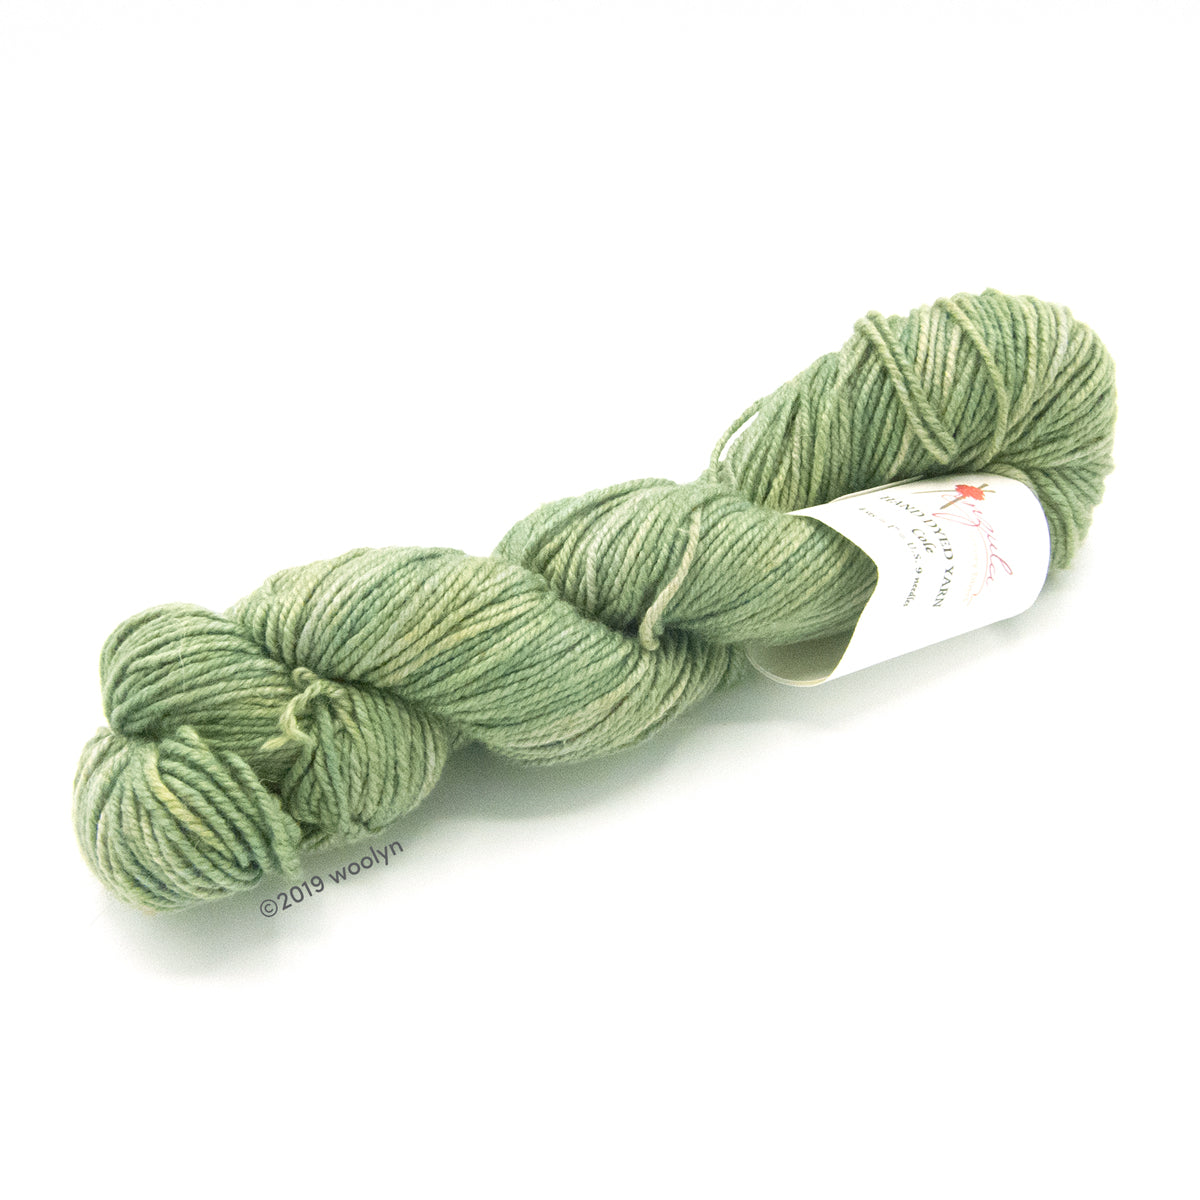 A twisted skein of Anzula Cole yarn in a light avocado green.